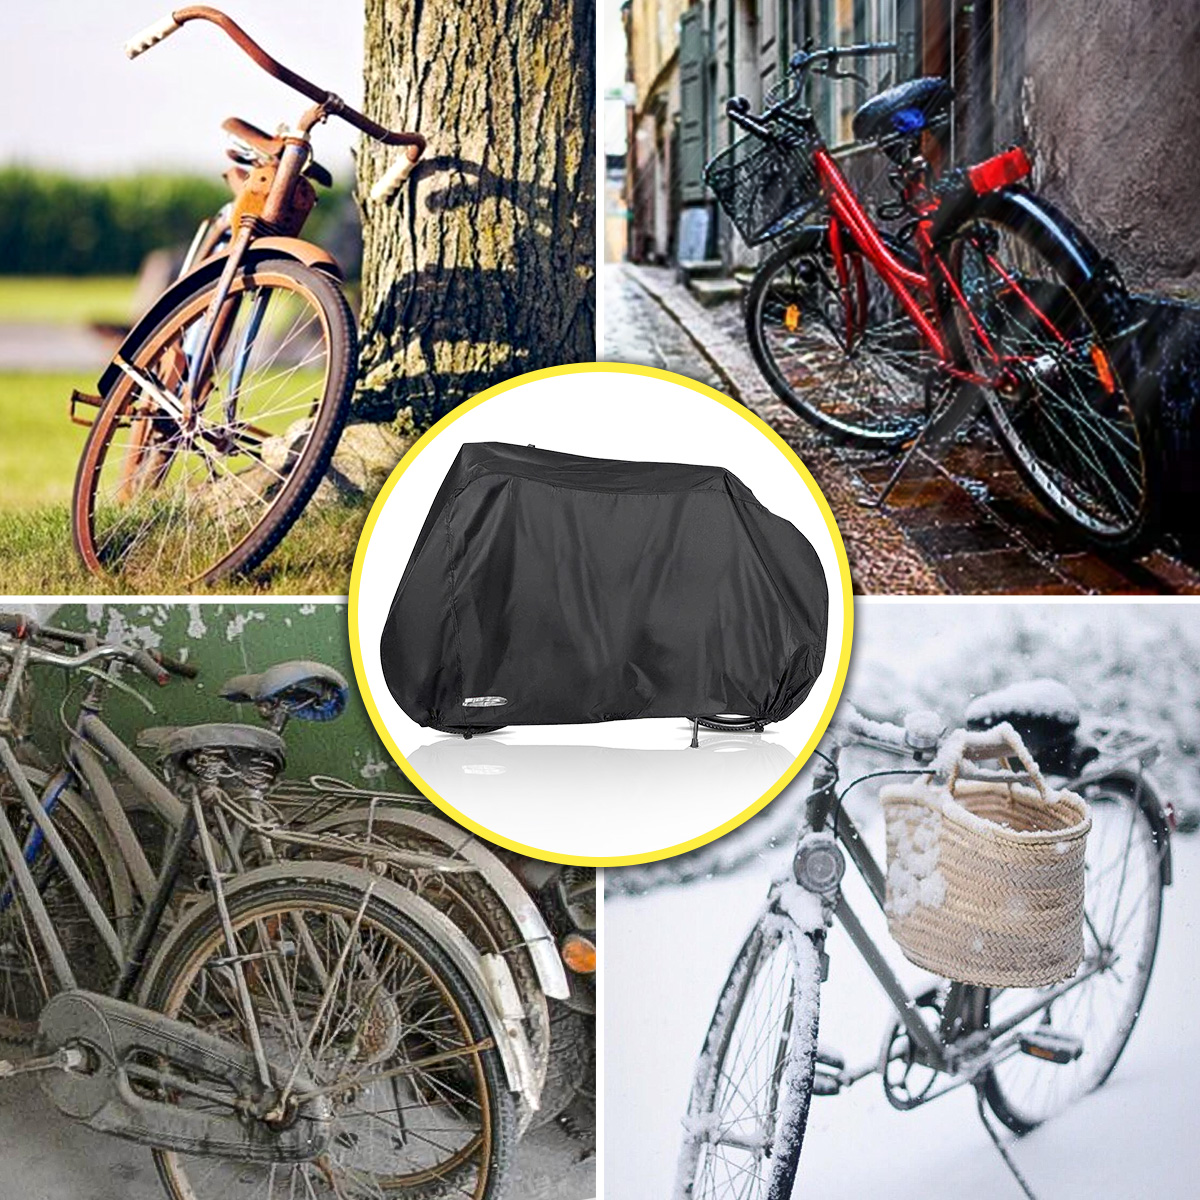 Audew Bike Cover Outdoor Waterproof Bicycle Cover with Lock Holes Windproof Dust